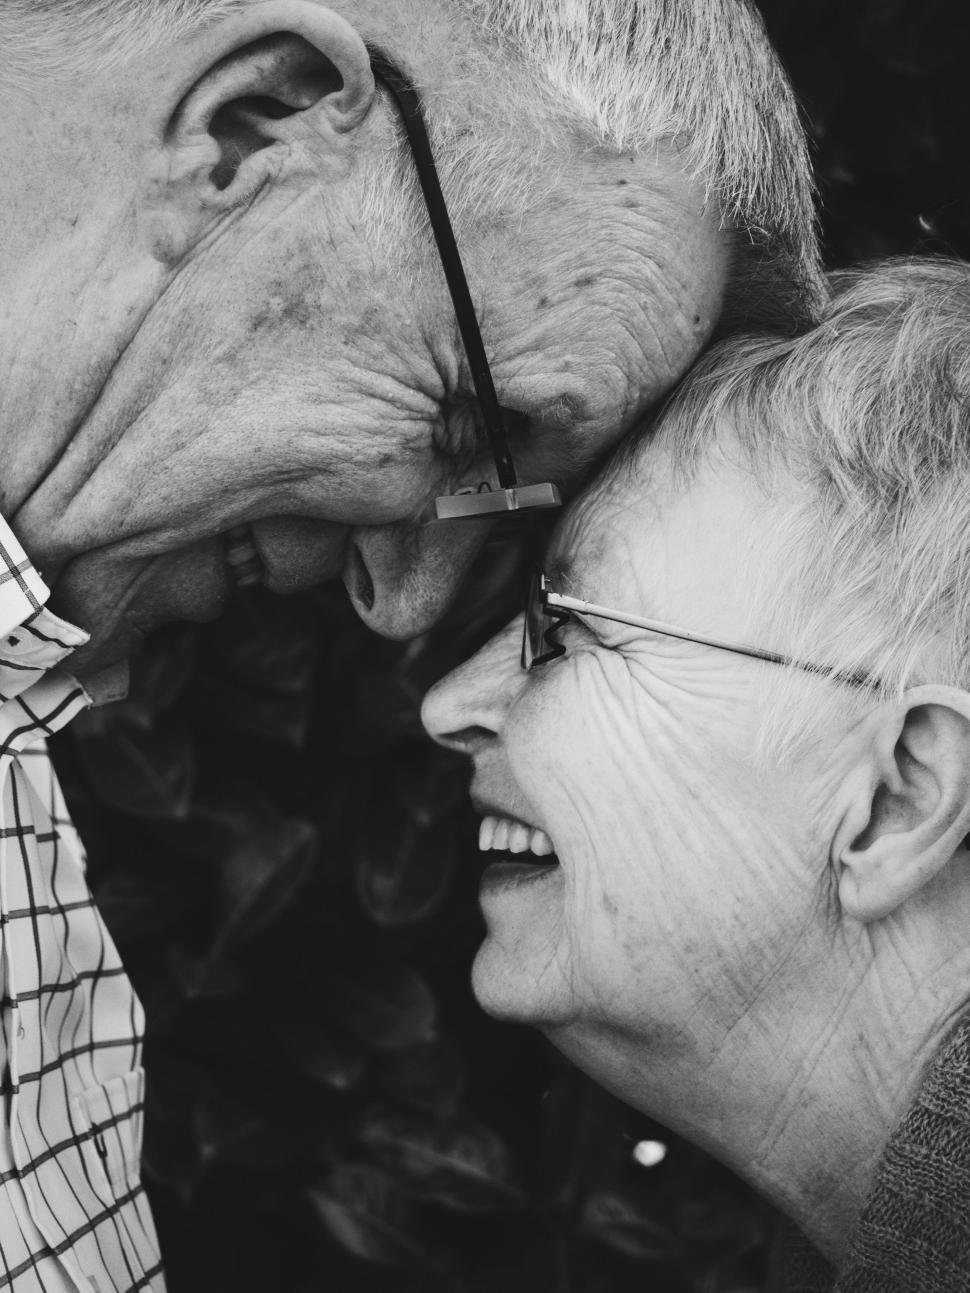 Download Free Stock Photo of man male people couple adult senior happy portrait mature love caucasian smile happiness person elderly together old face lifestyle men smiling hair grandma retired two retirement husband wife expression family romance